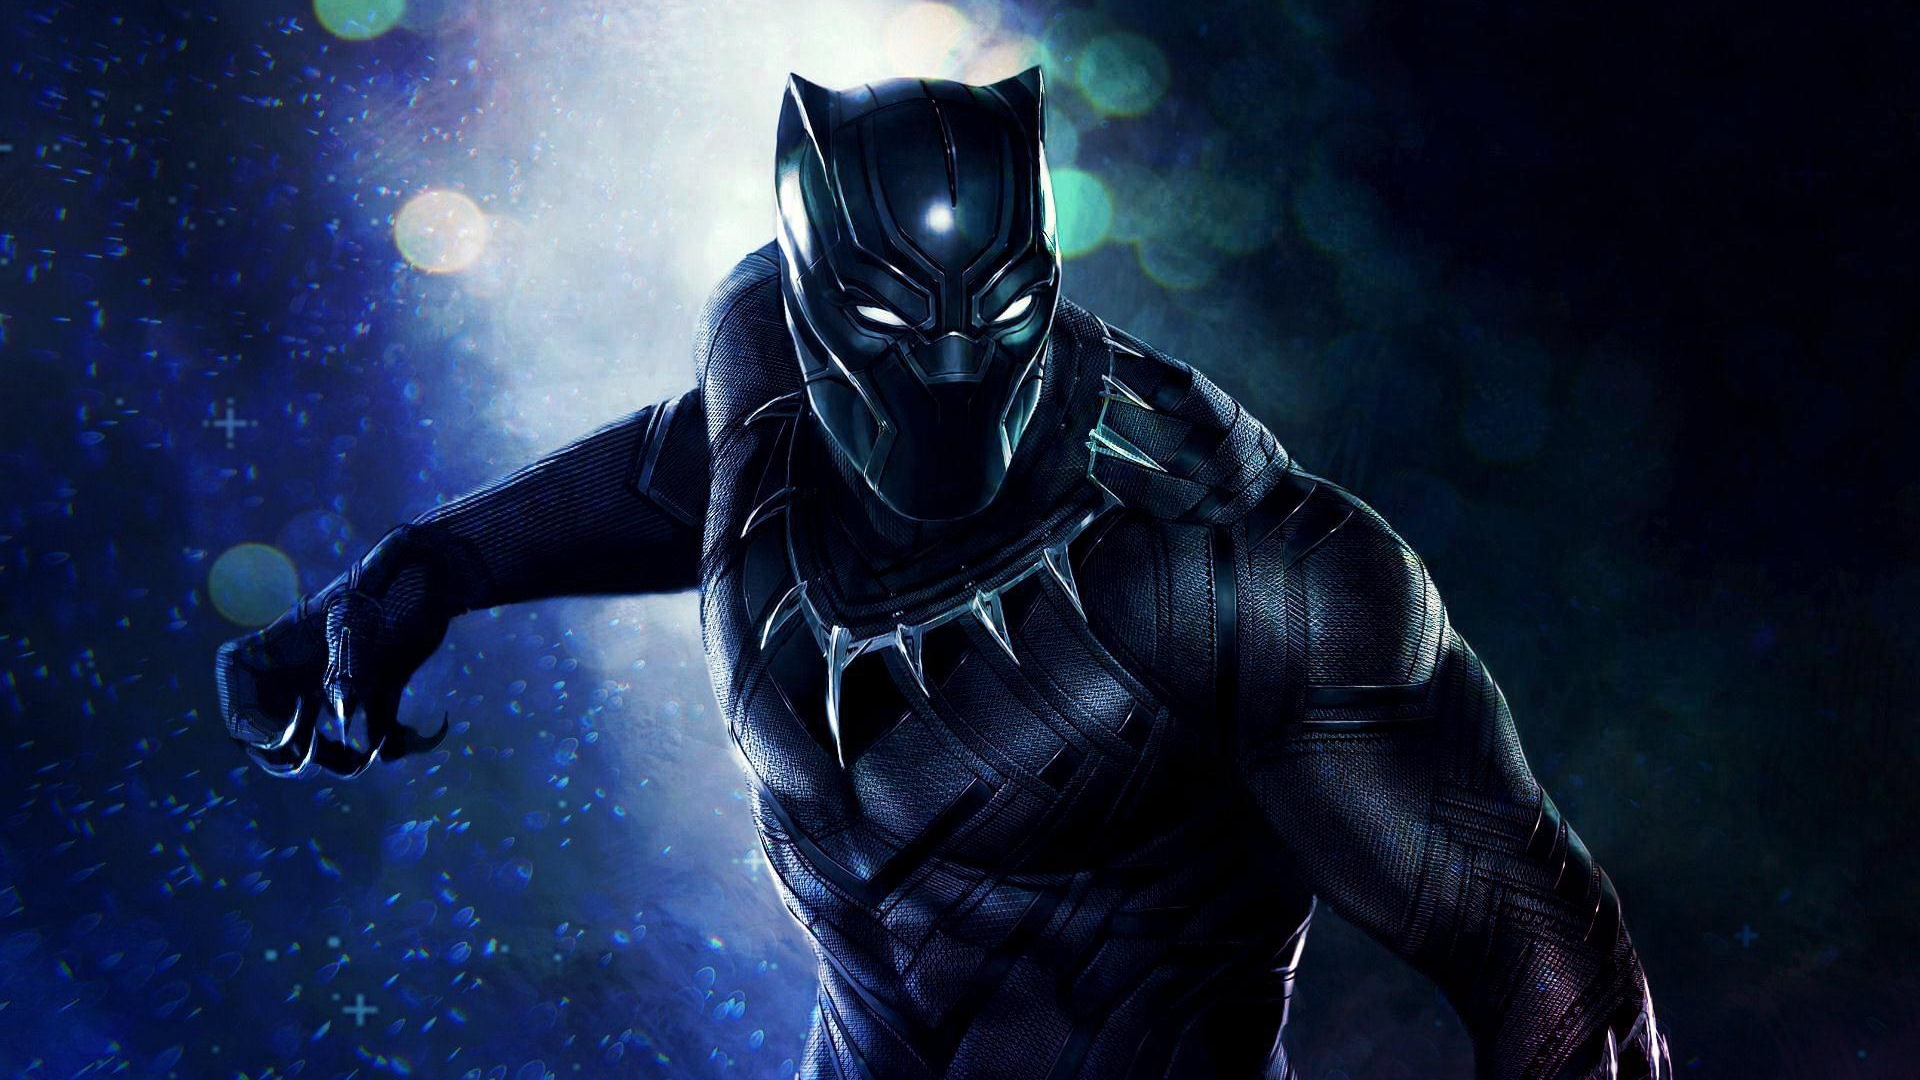 Free Download Black Panther Hd Wallpaper 1920x1200 For Your